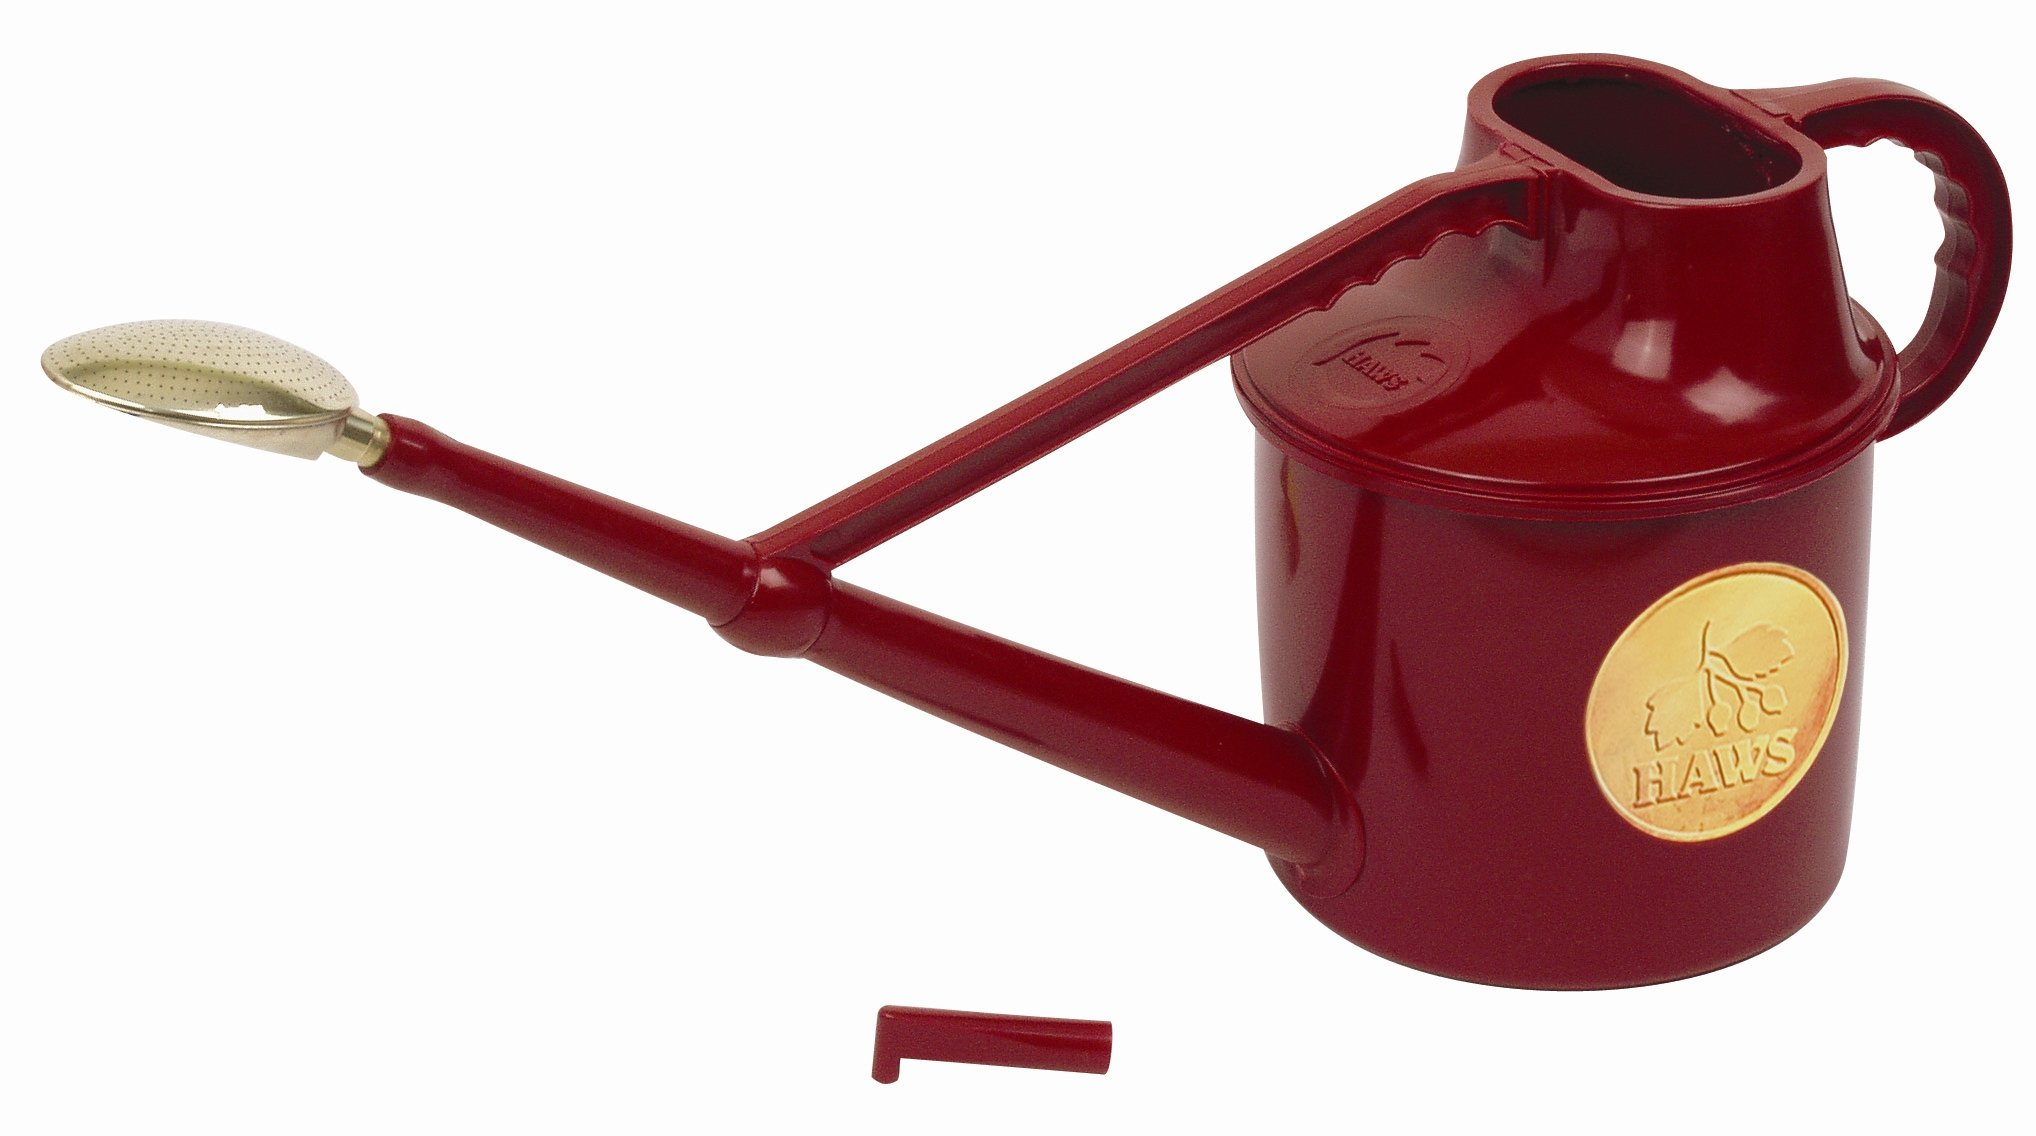 Bosmere Haws Deluxe Plastic Watering Can, 1.8-Gallon/7-Liter, Red